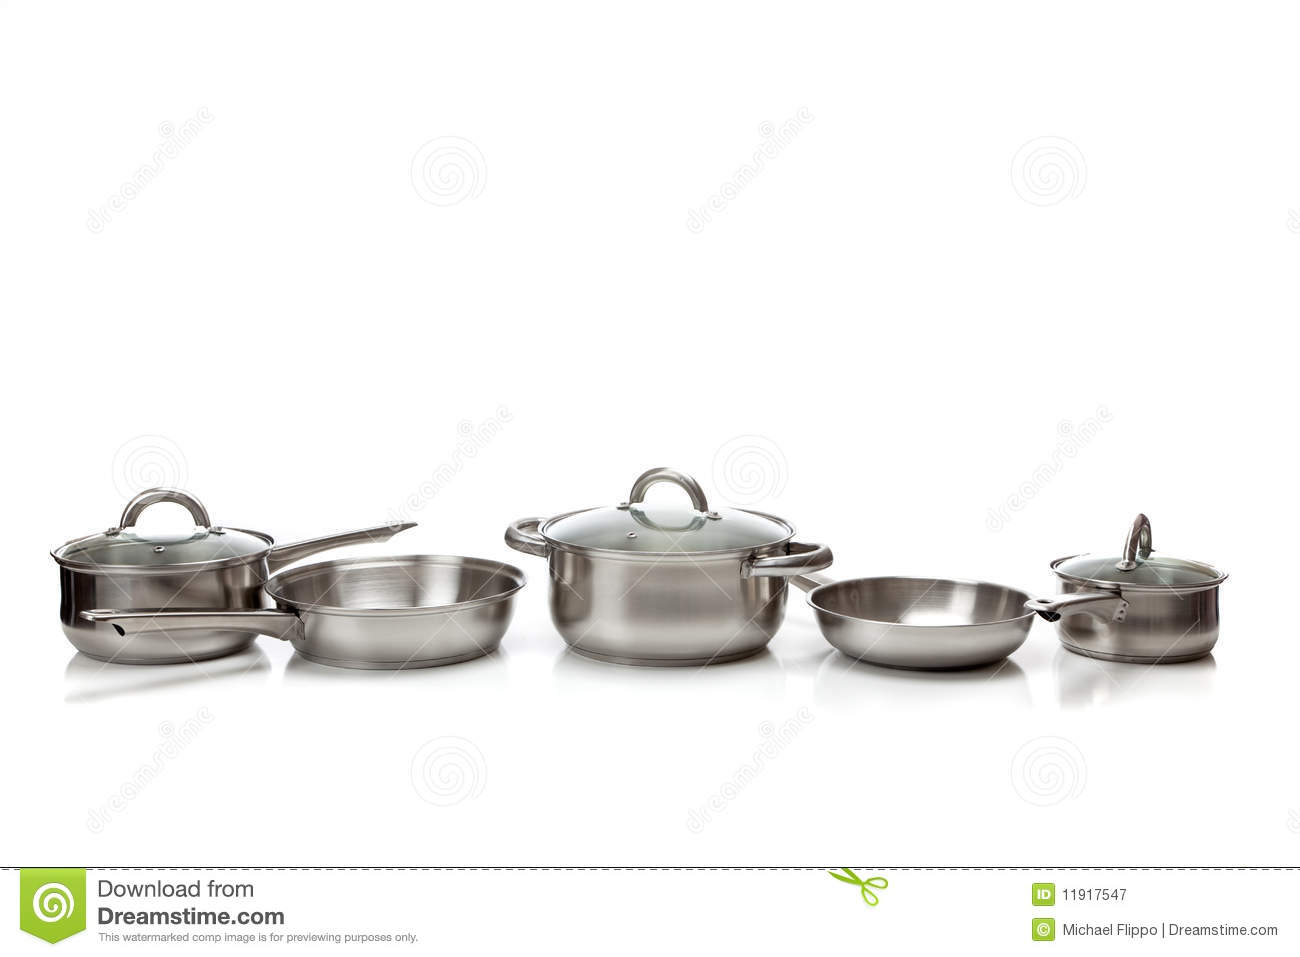 stainless steel pots and pans royalty free stock photography image 11917547. Black Bedroom Furniture Sets. Home Design Ideas